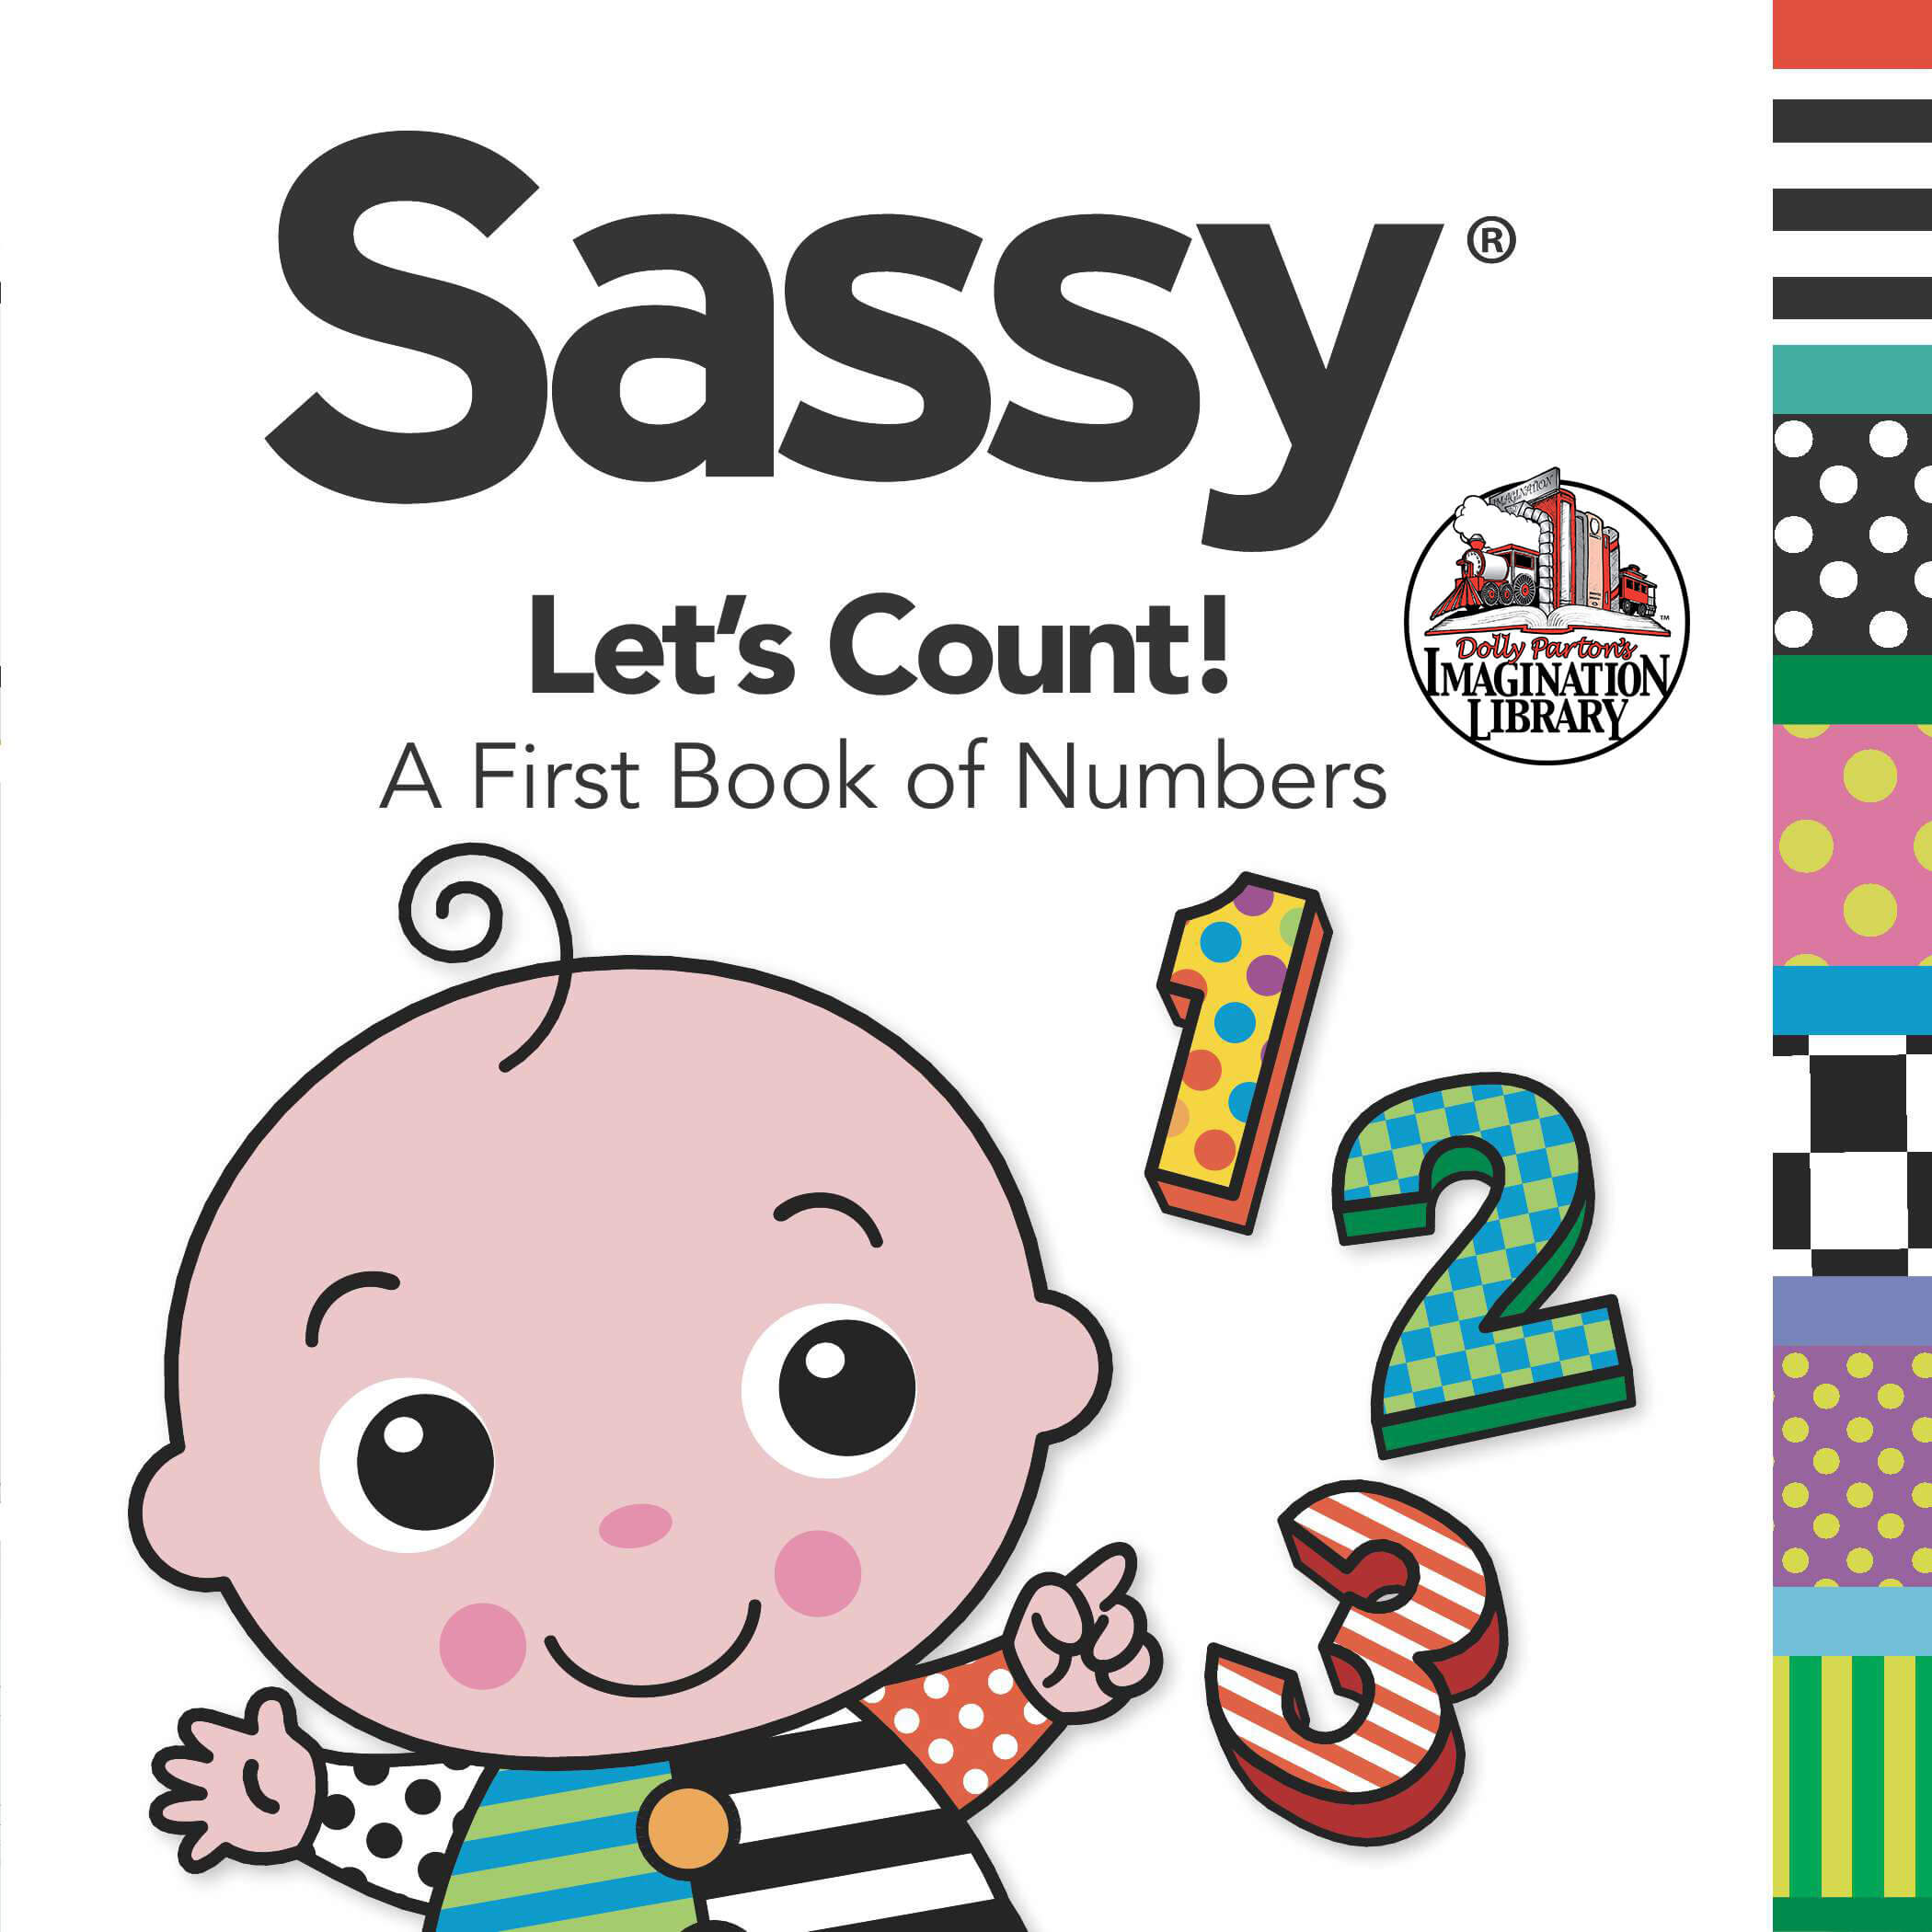 Sassy Let's Count - Dolly Parton's Imagination Library